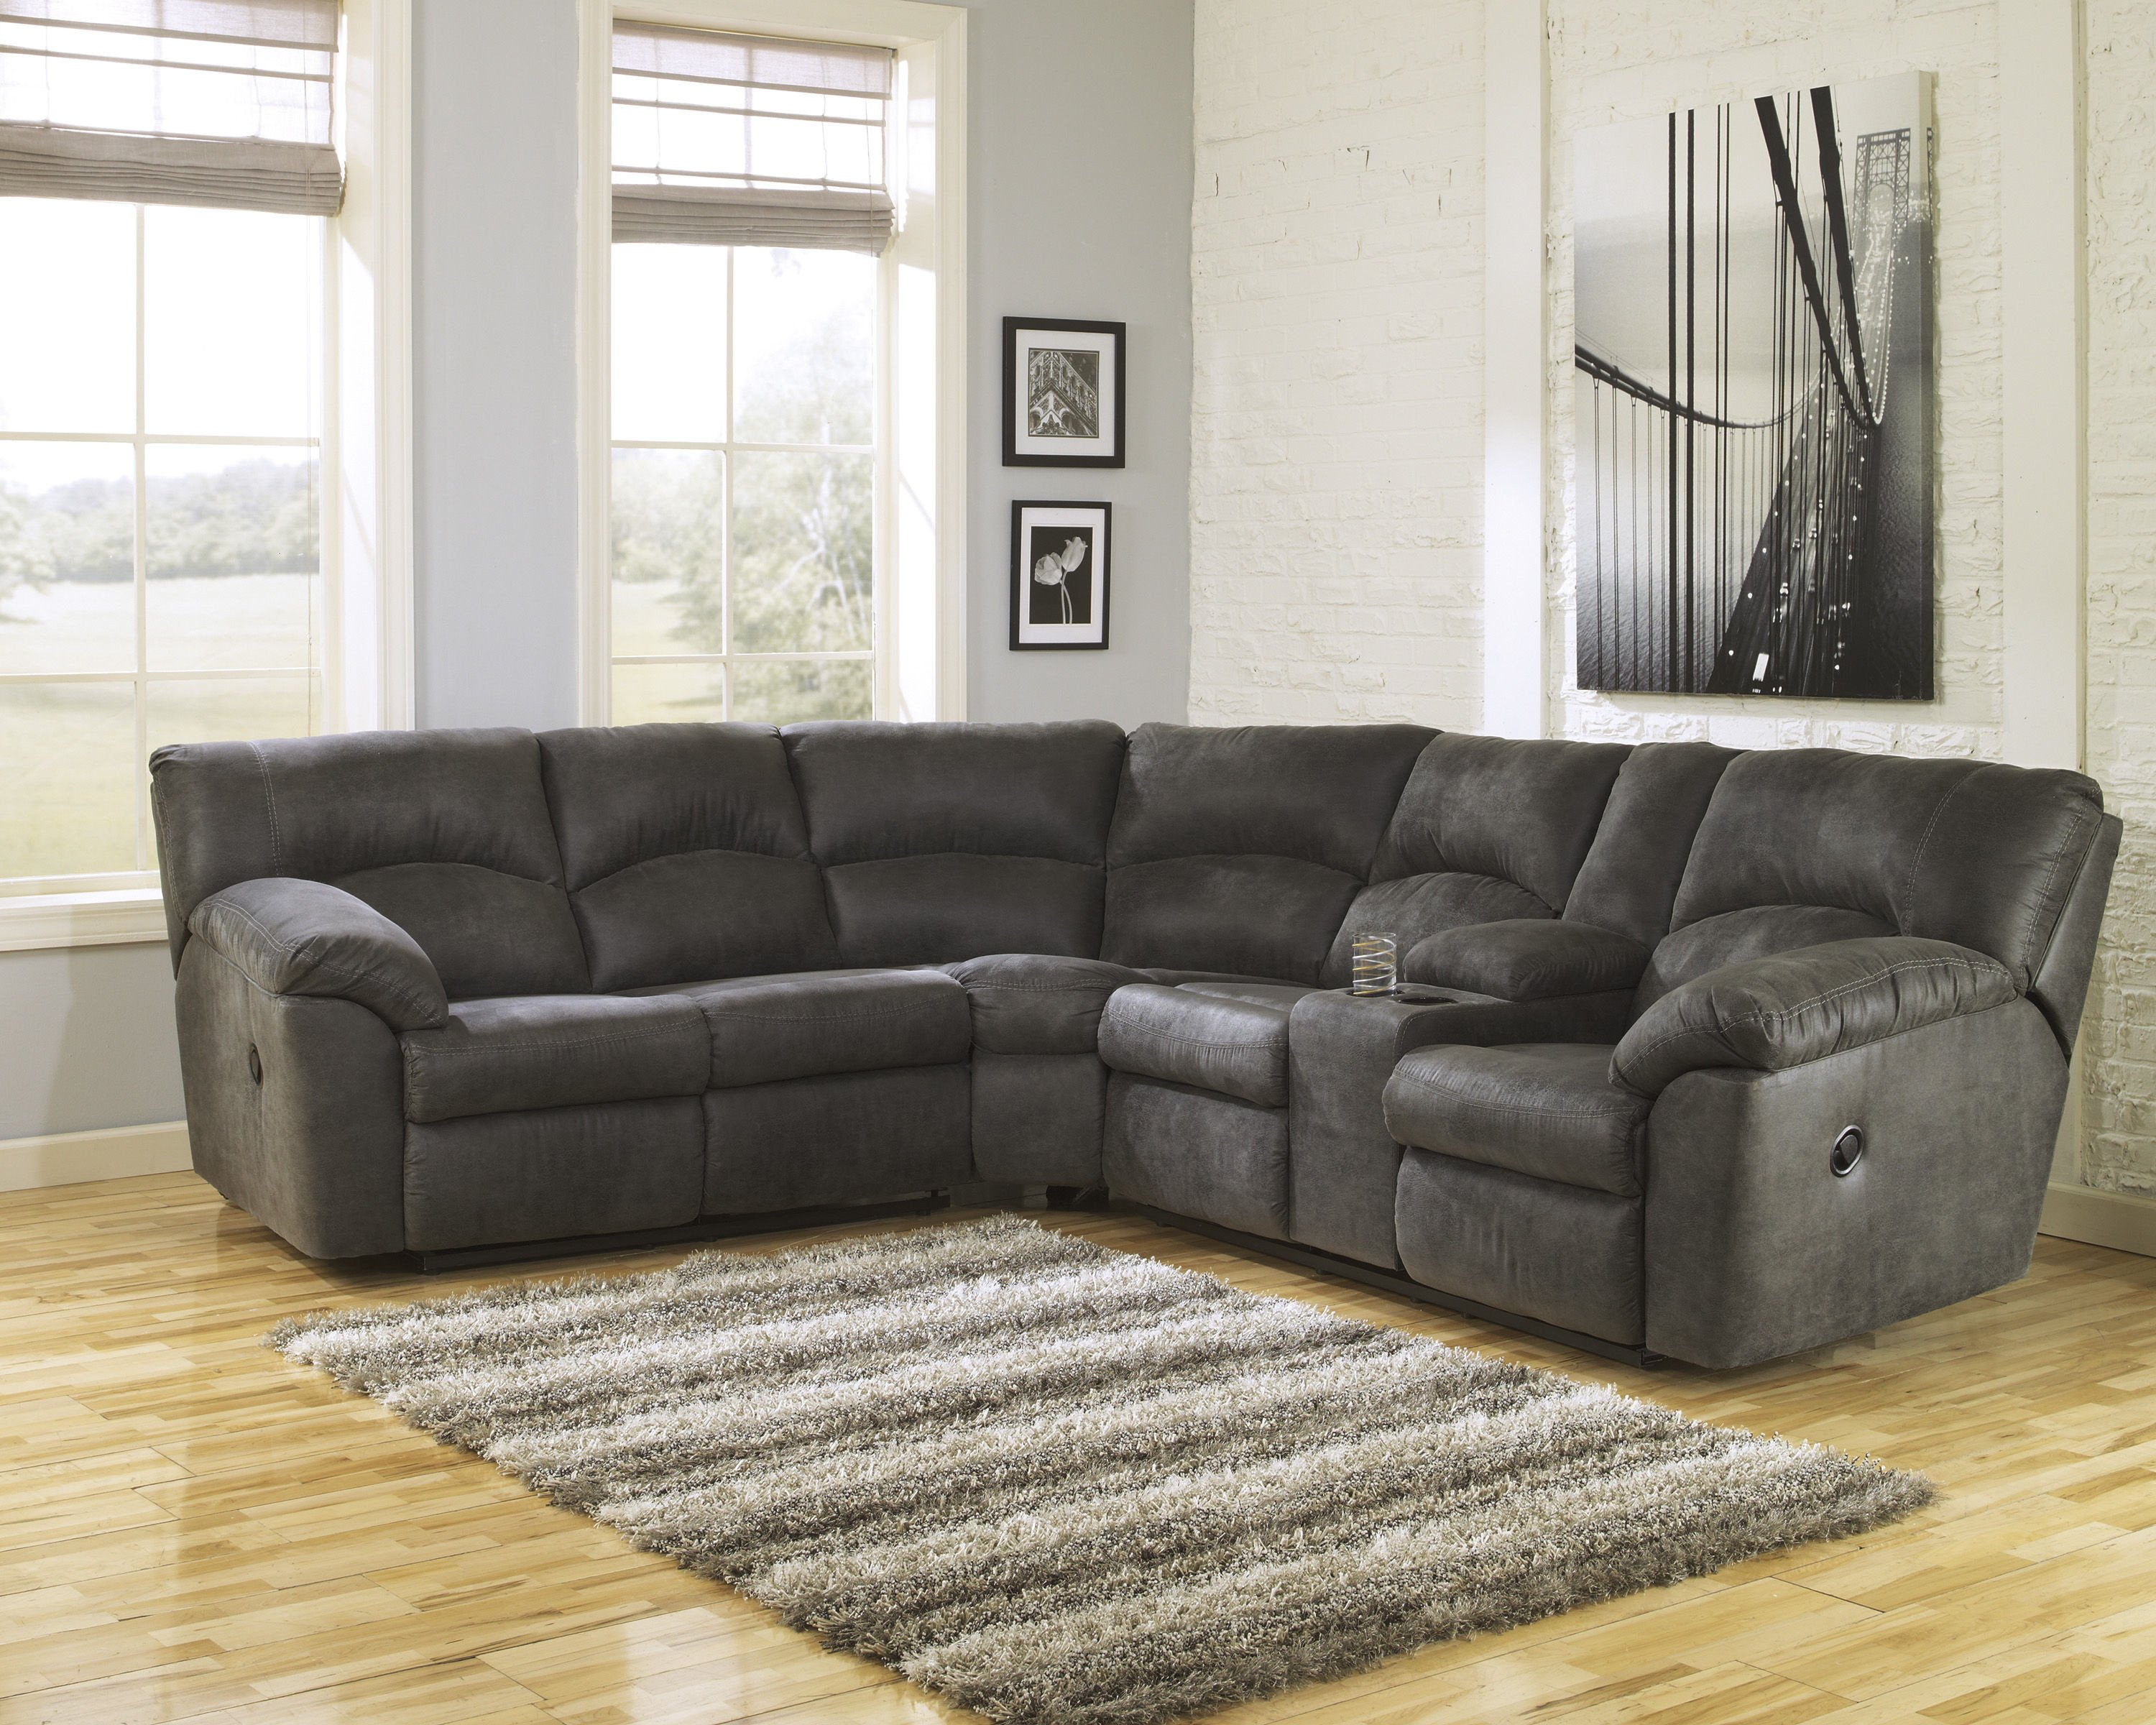 Ashley Bedroom Furniture Sale Fresh ashley Furniture Tambo Pewter Sectional